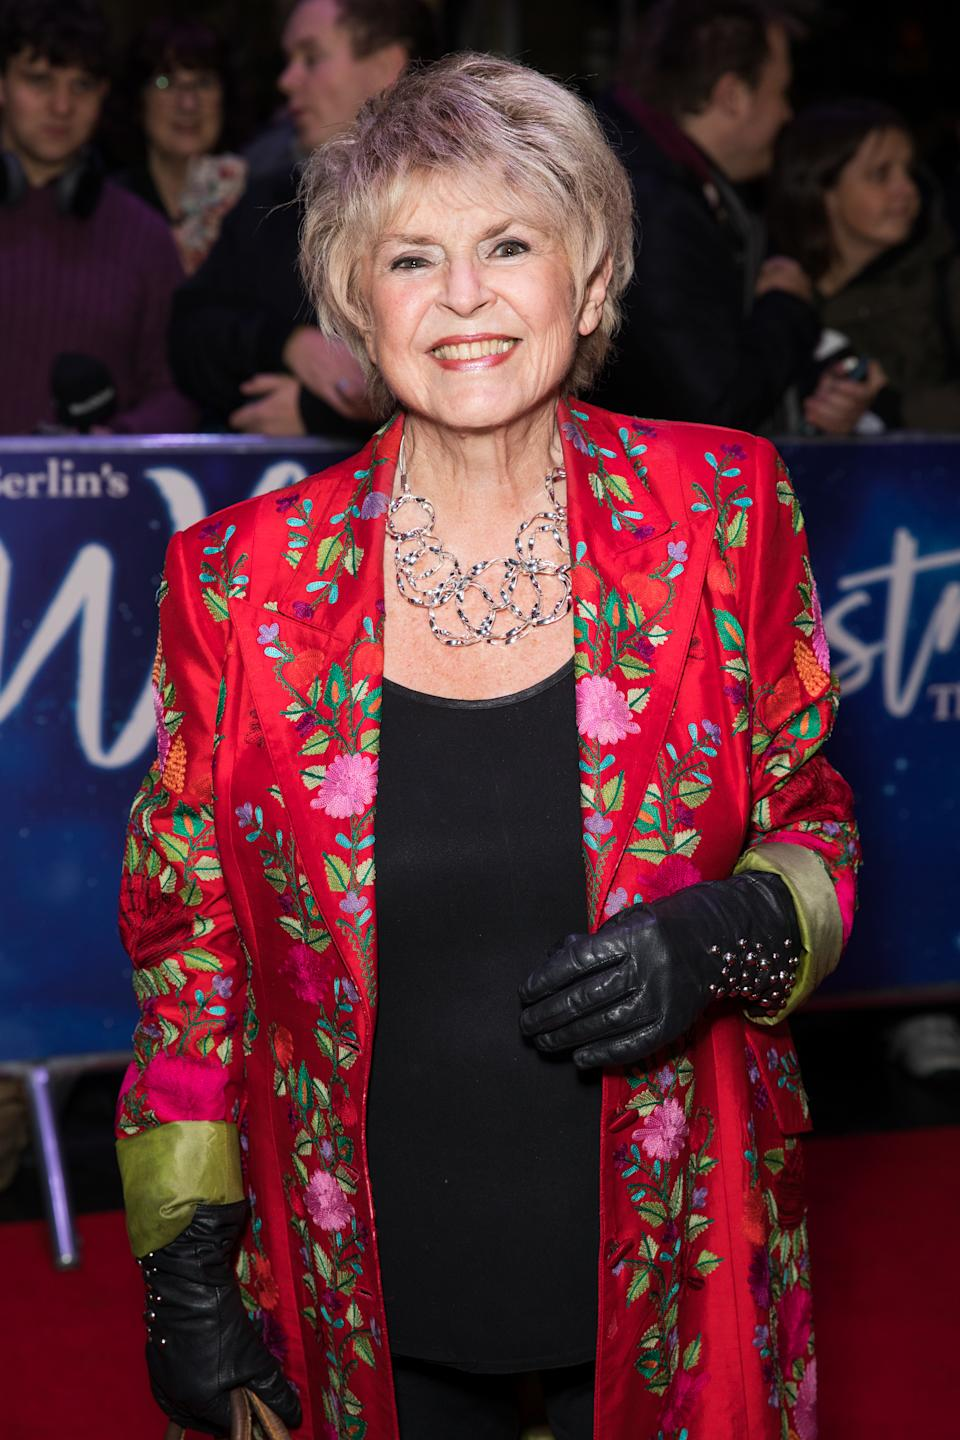 LONDON, UNITED KINGDOM, NOVEMBER 25, 2019: Gloria Hunniford attends the White Christmas Musical press night at the Dominion Theatre. (Photo by Phil Lewis / SOPA Images/Sipa USA)